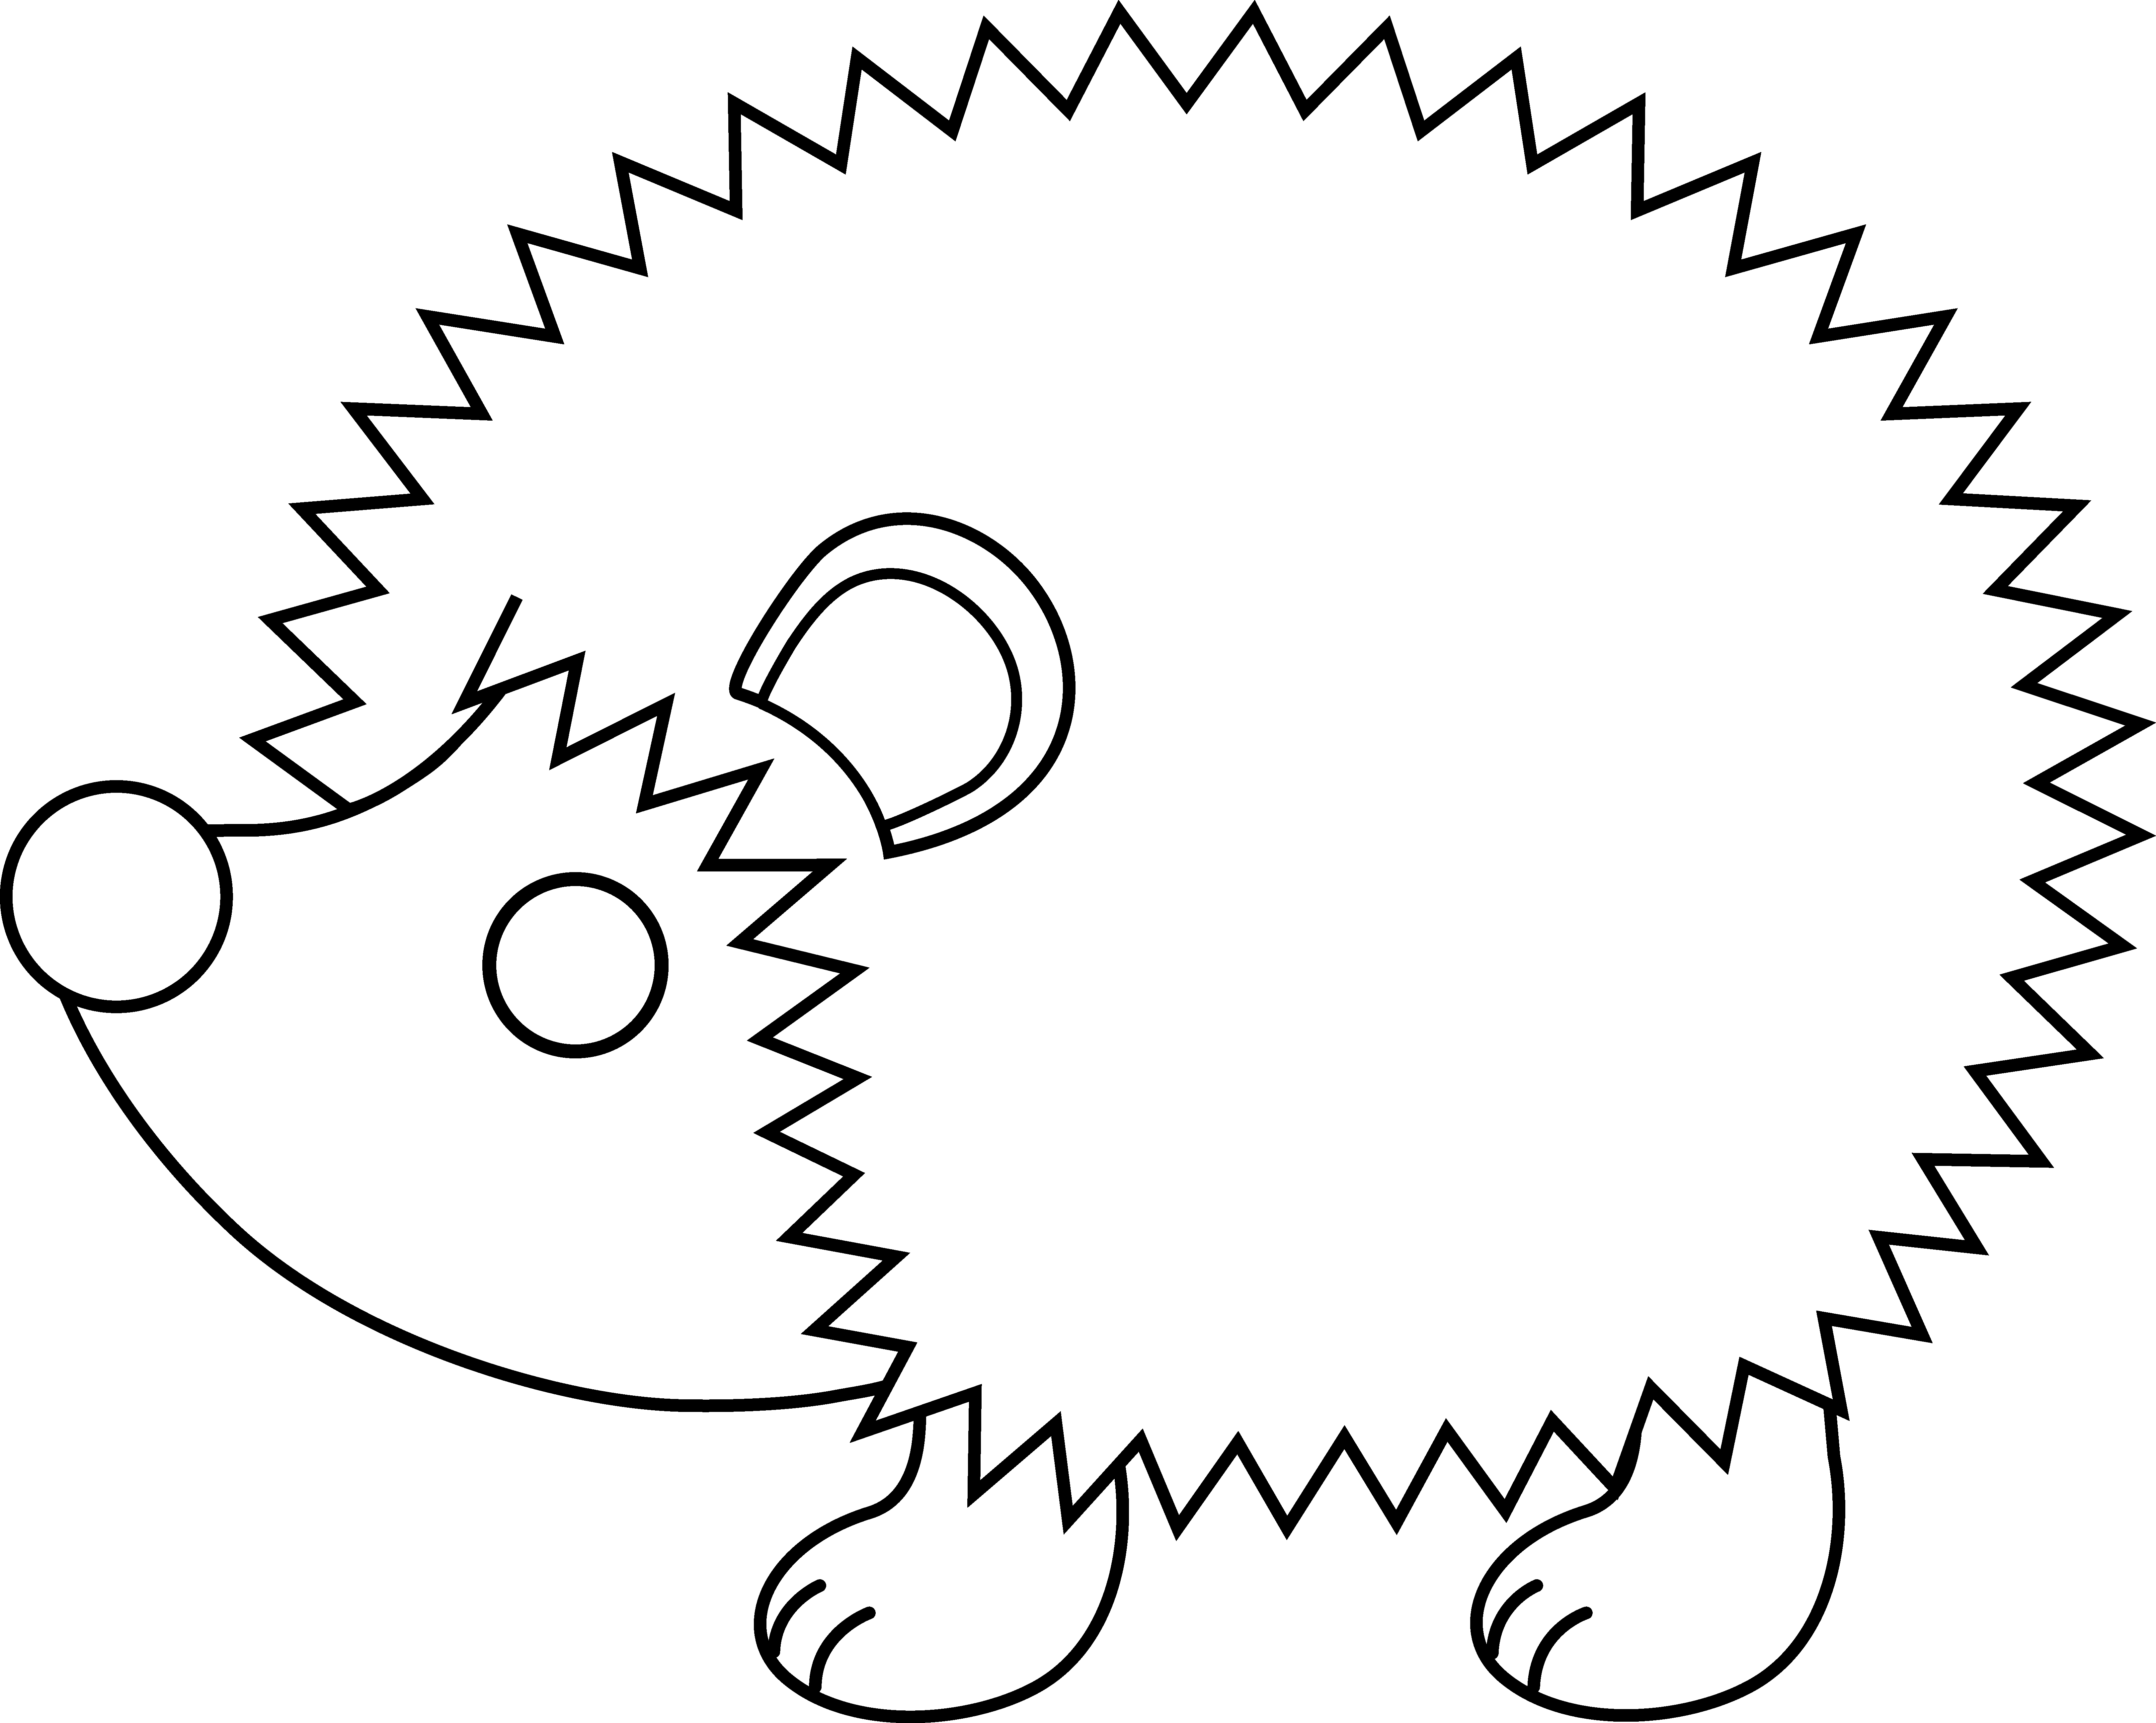 Hedgehog clipart hedgehog outline. Line drawing at getdrawings